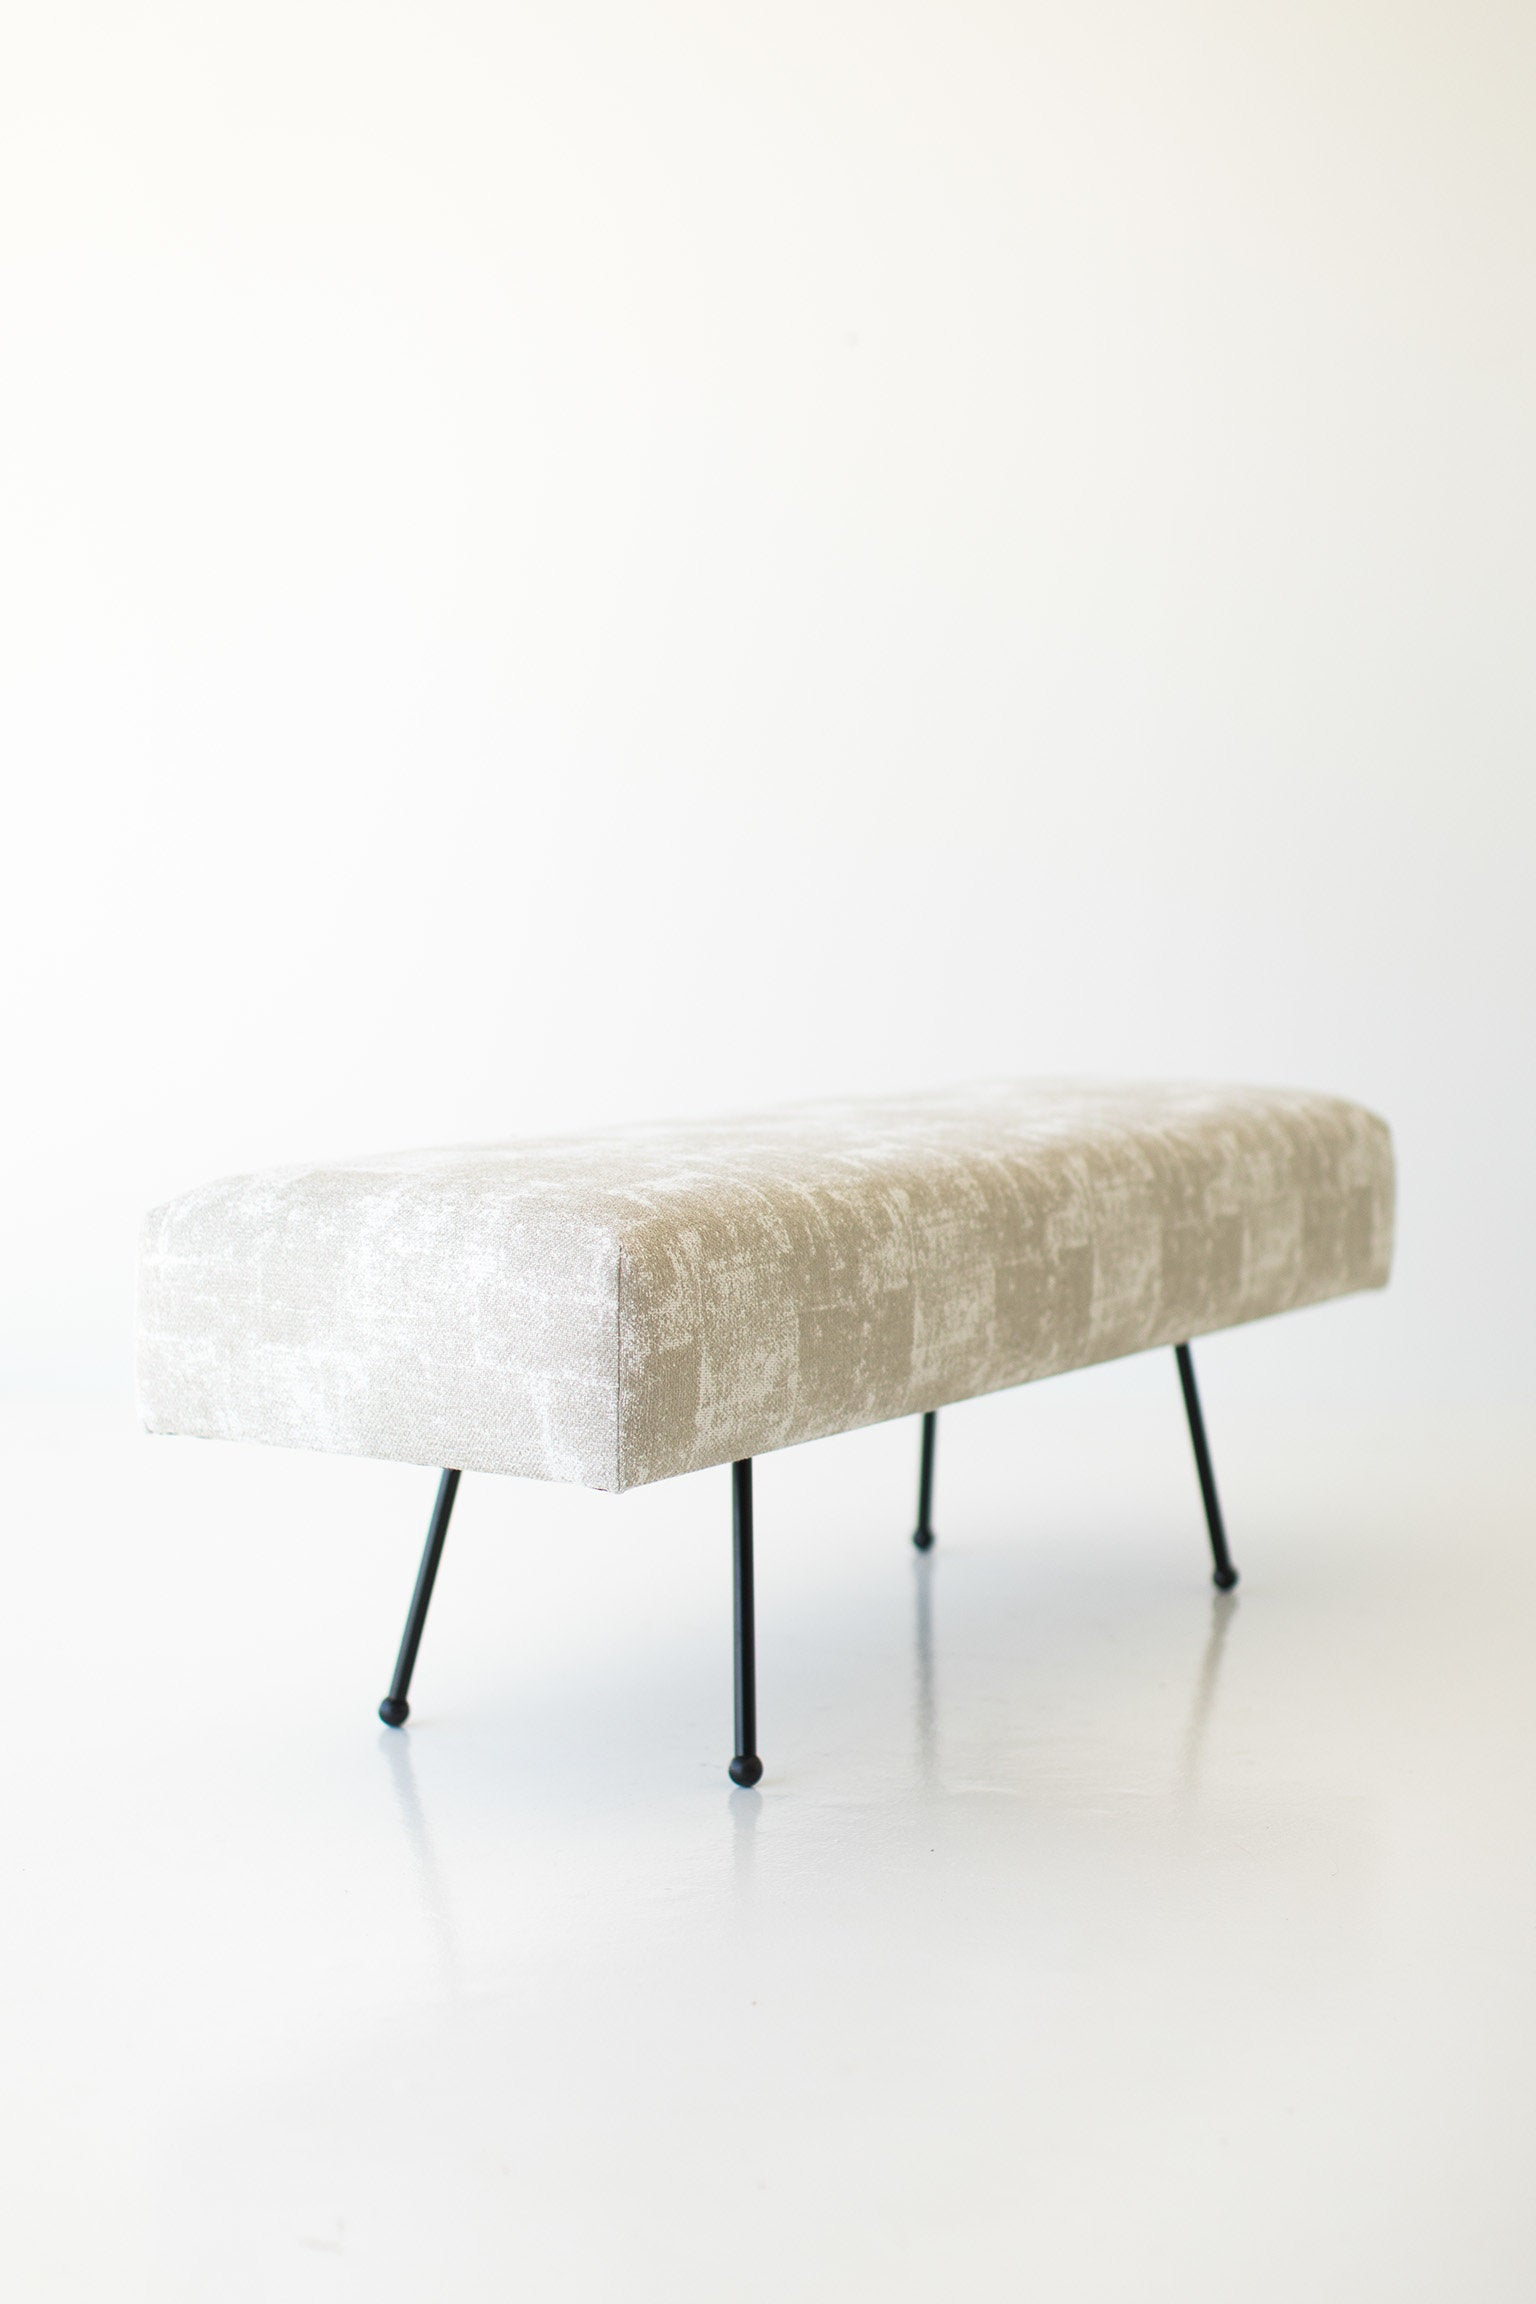 I07A8903-upholstered-bench-1710-01